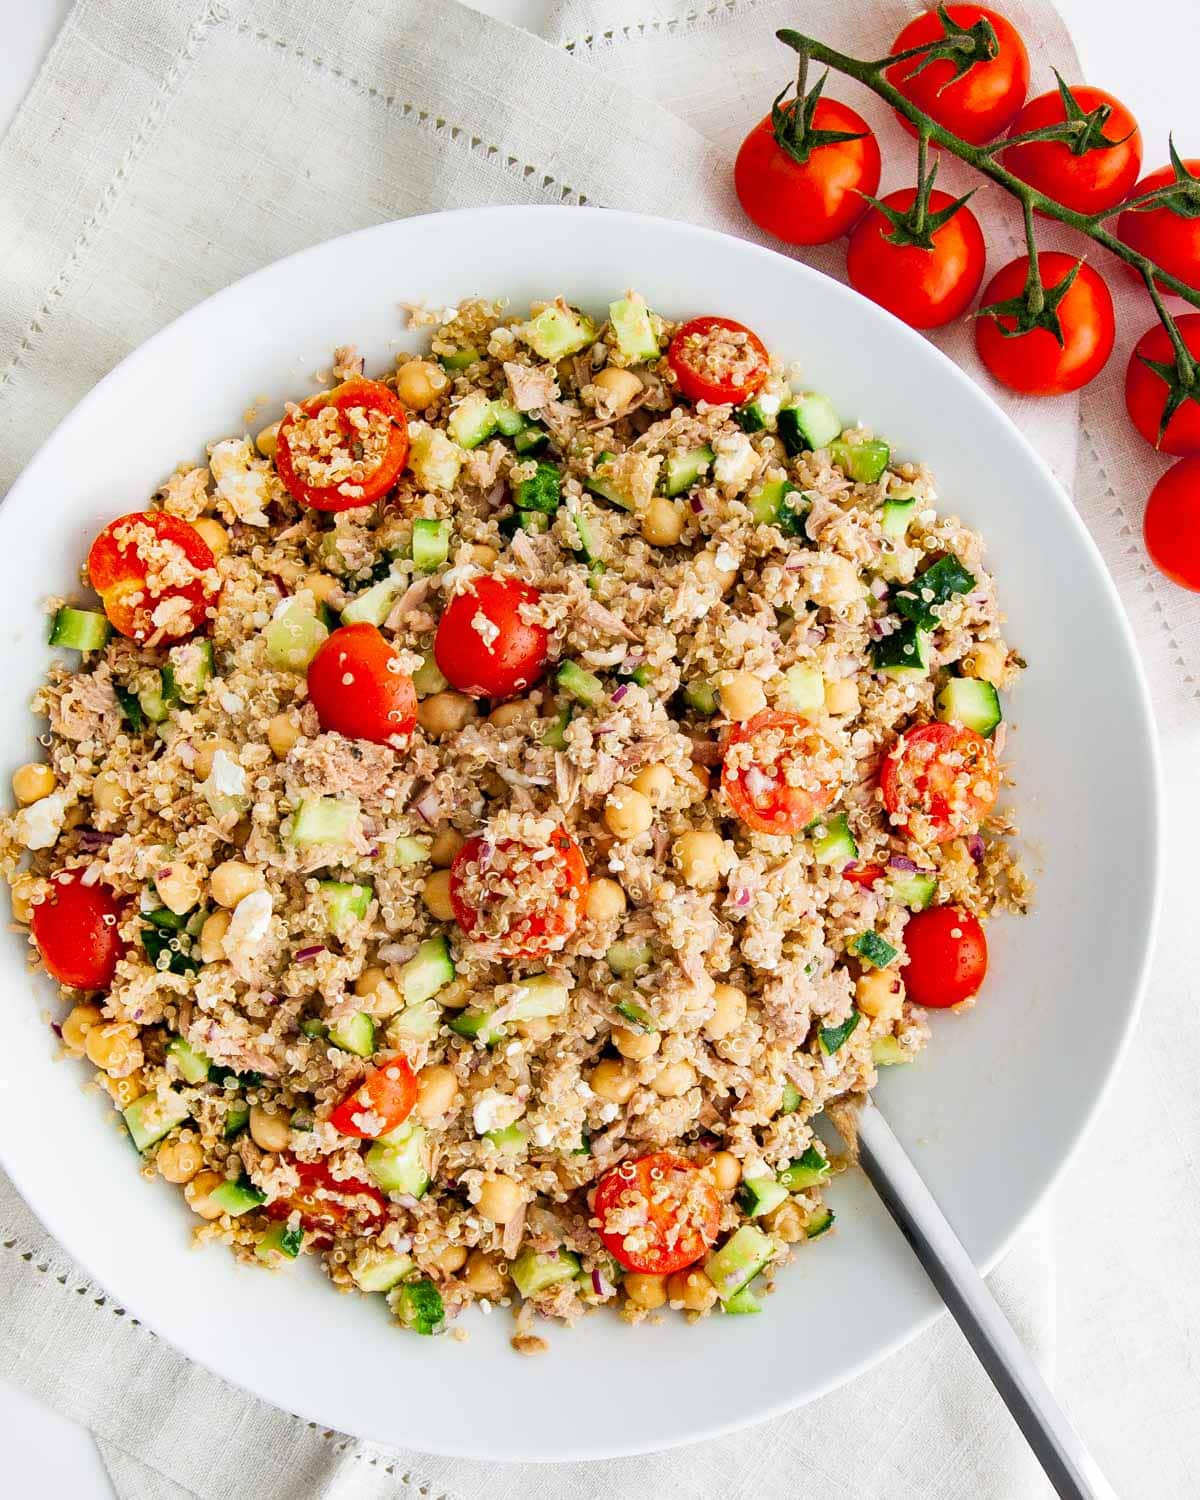 Tuna Quinoa Salad Craving Home Cooked